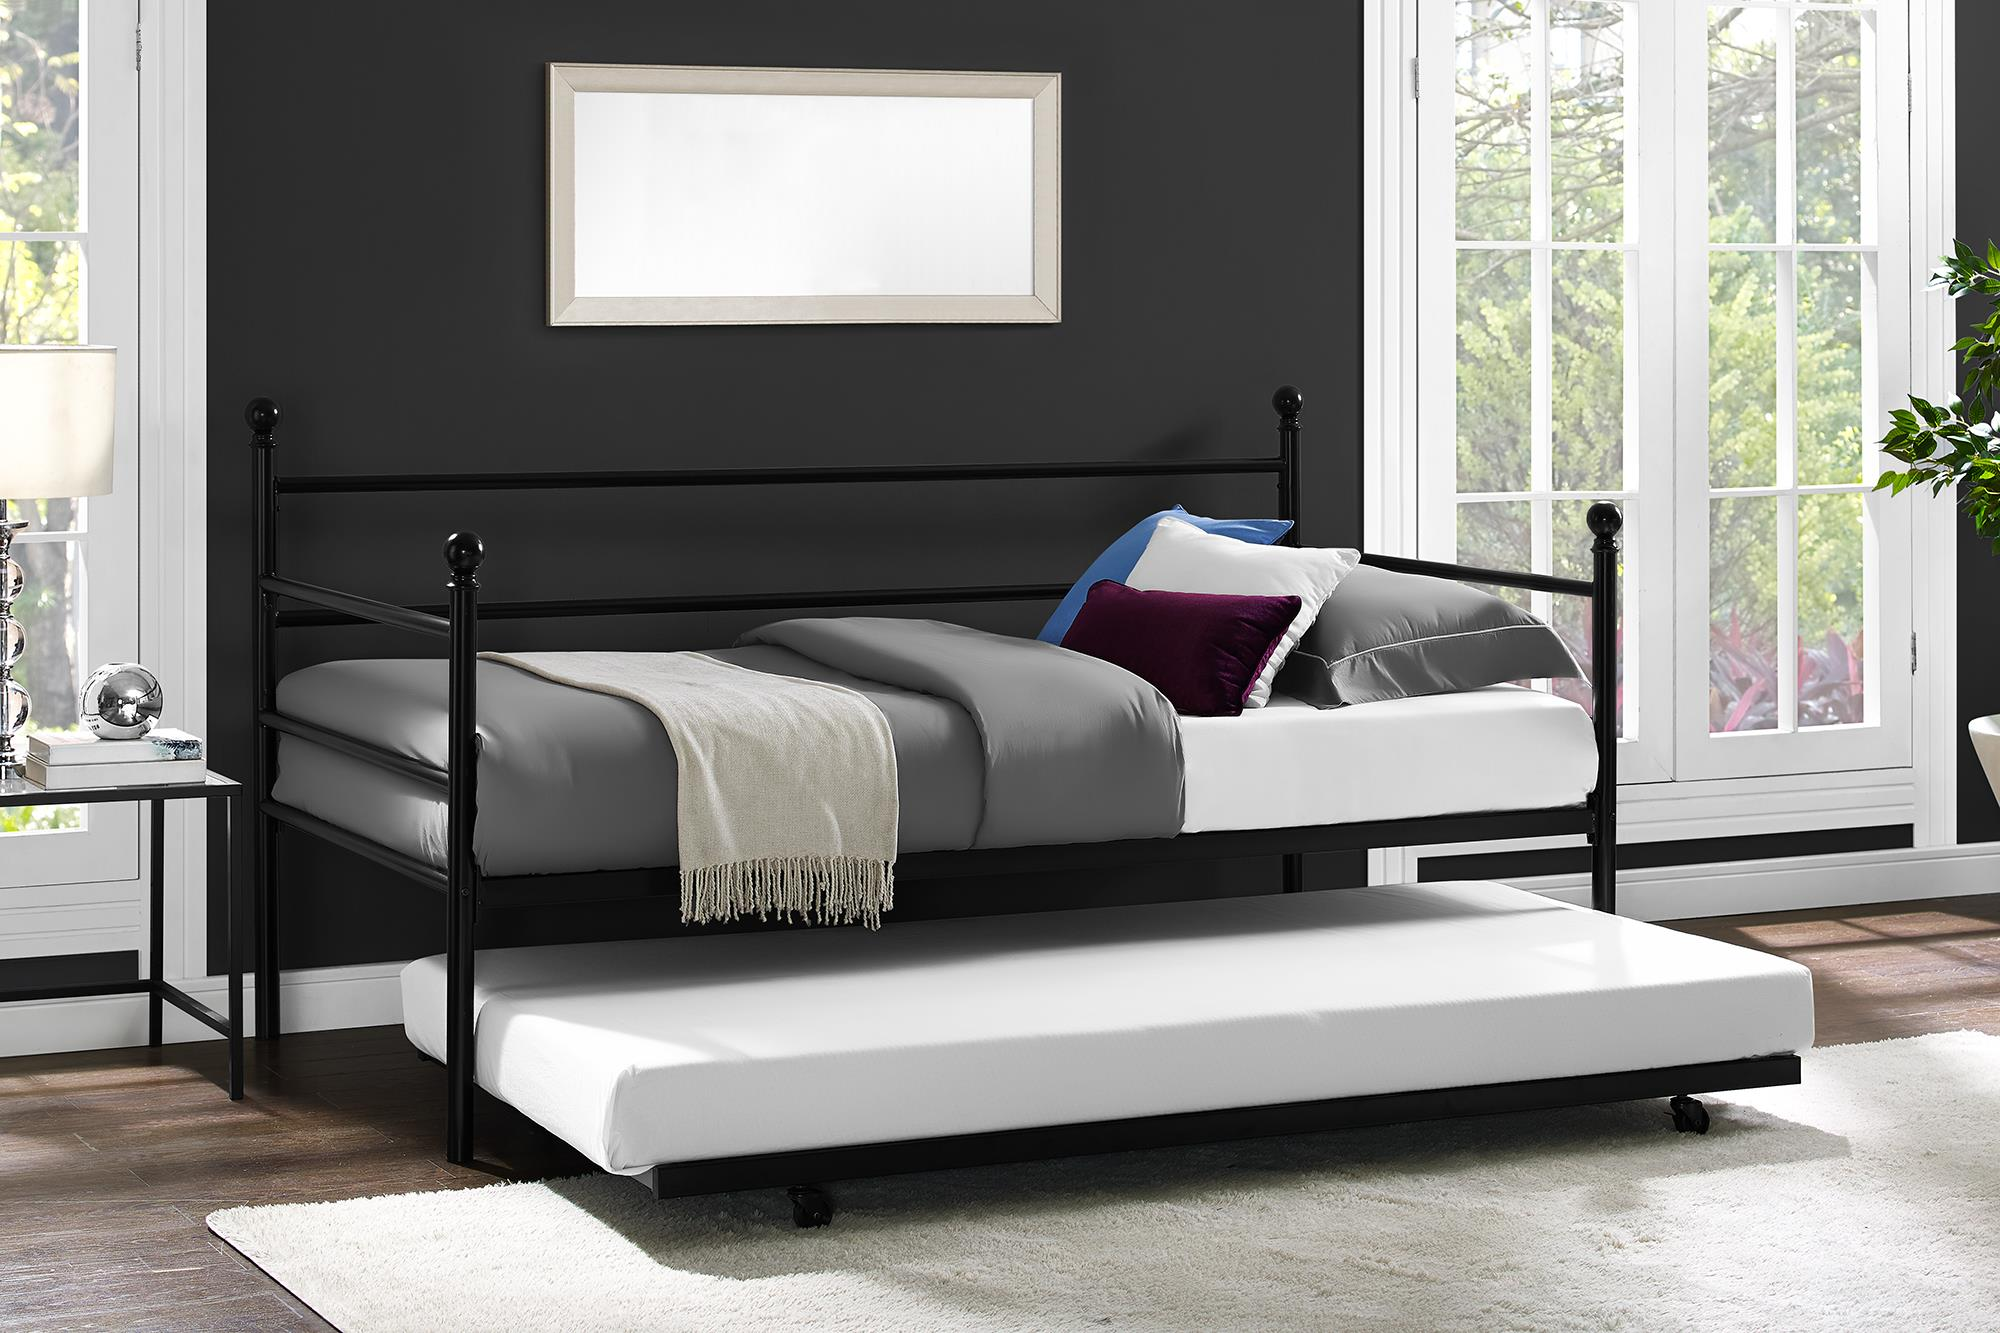 Daybed With Trundle Twin Size Metal Frame Bed Space Saving